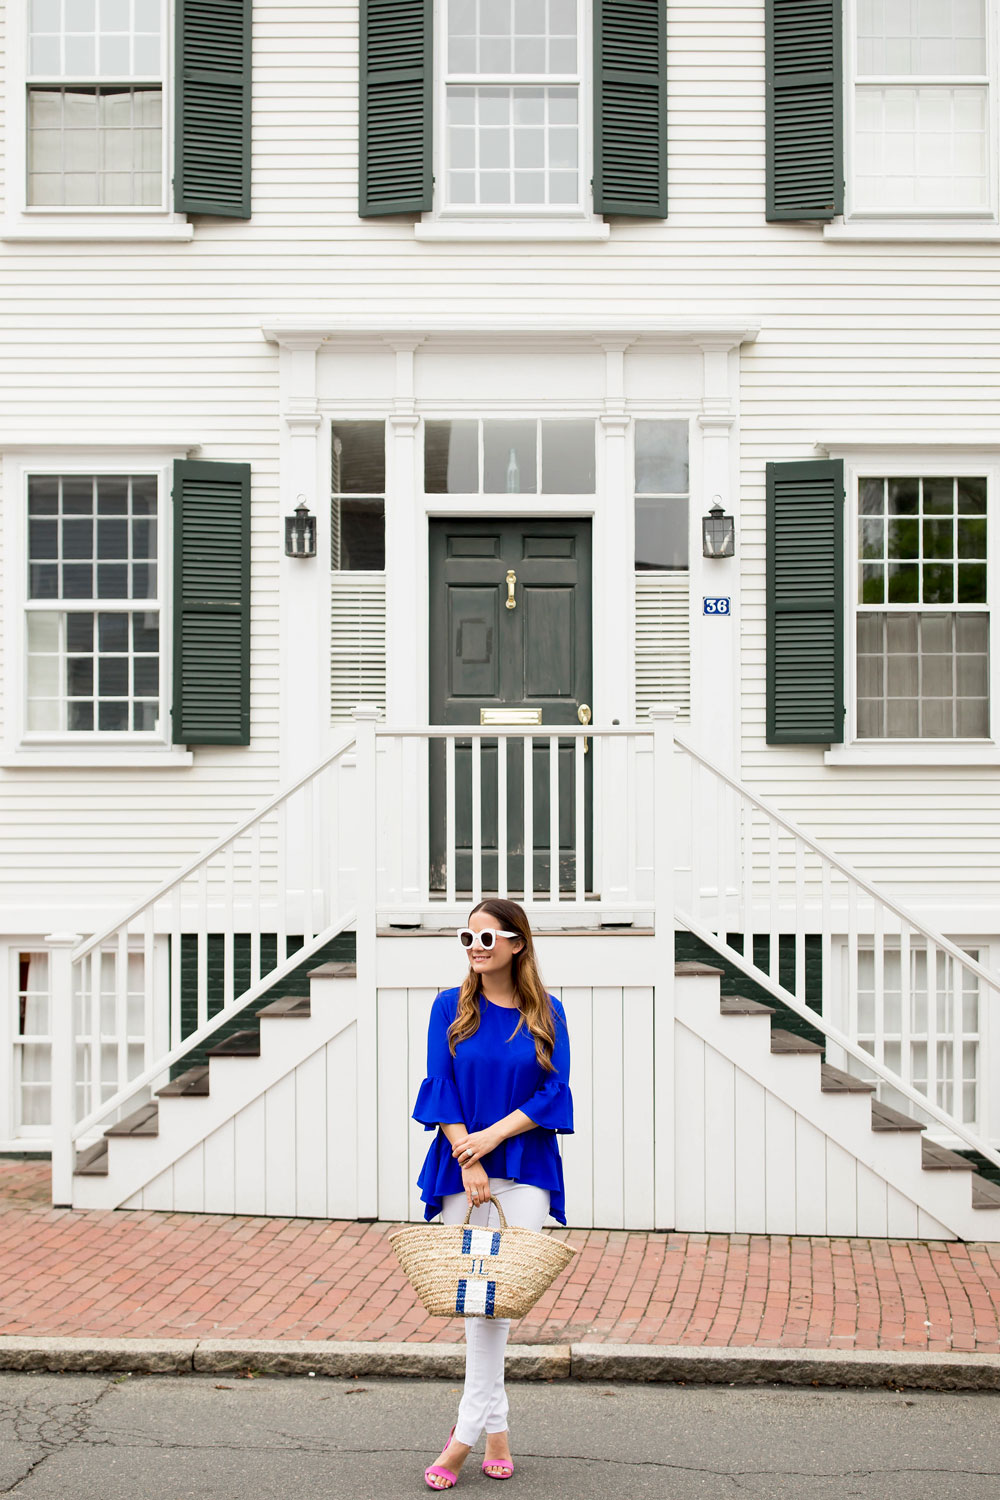 Nantucket Island Travel Blog